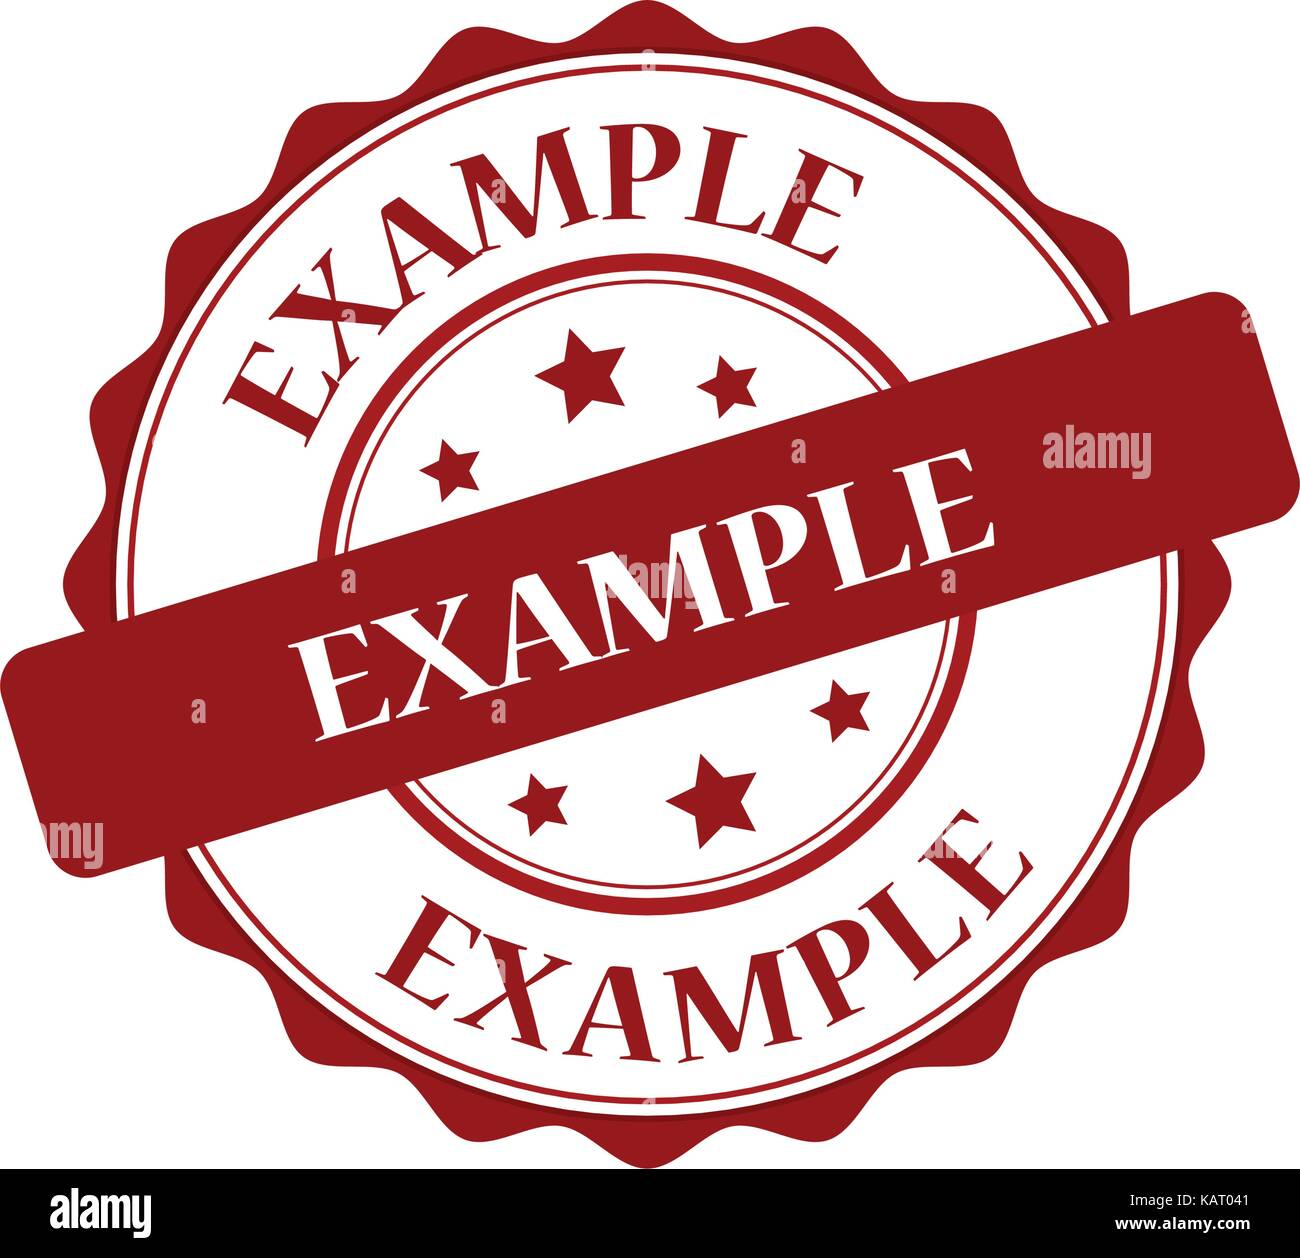 example red stamp illustration stock vector art illustration